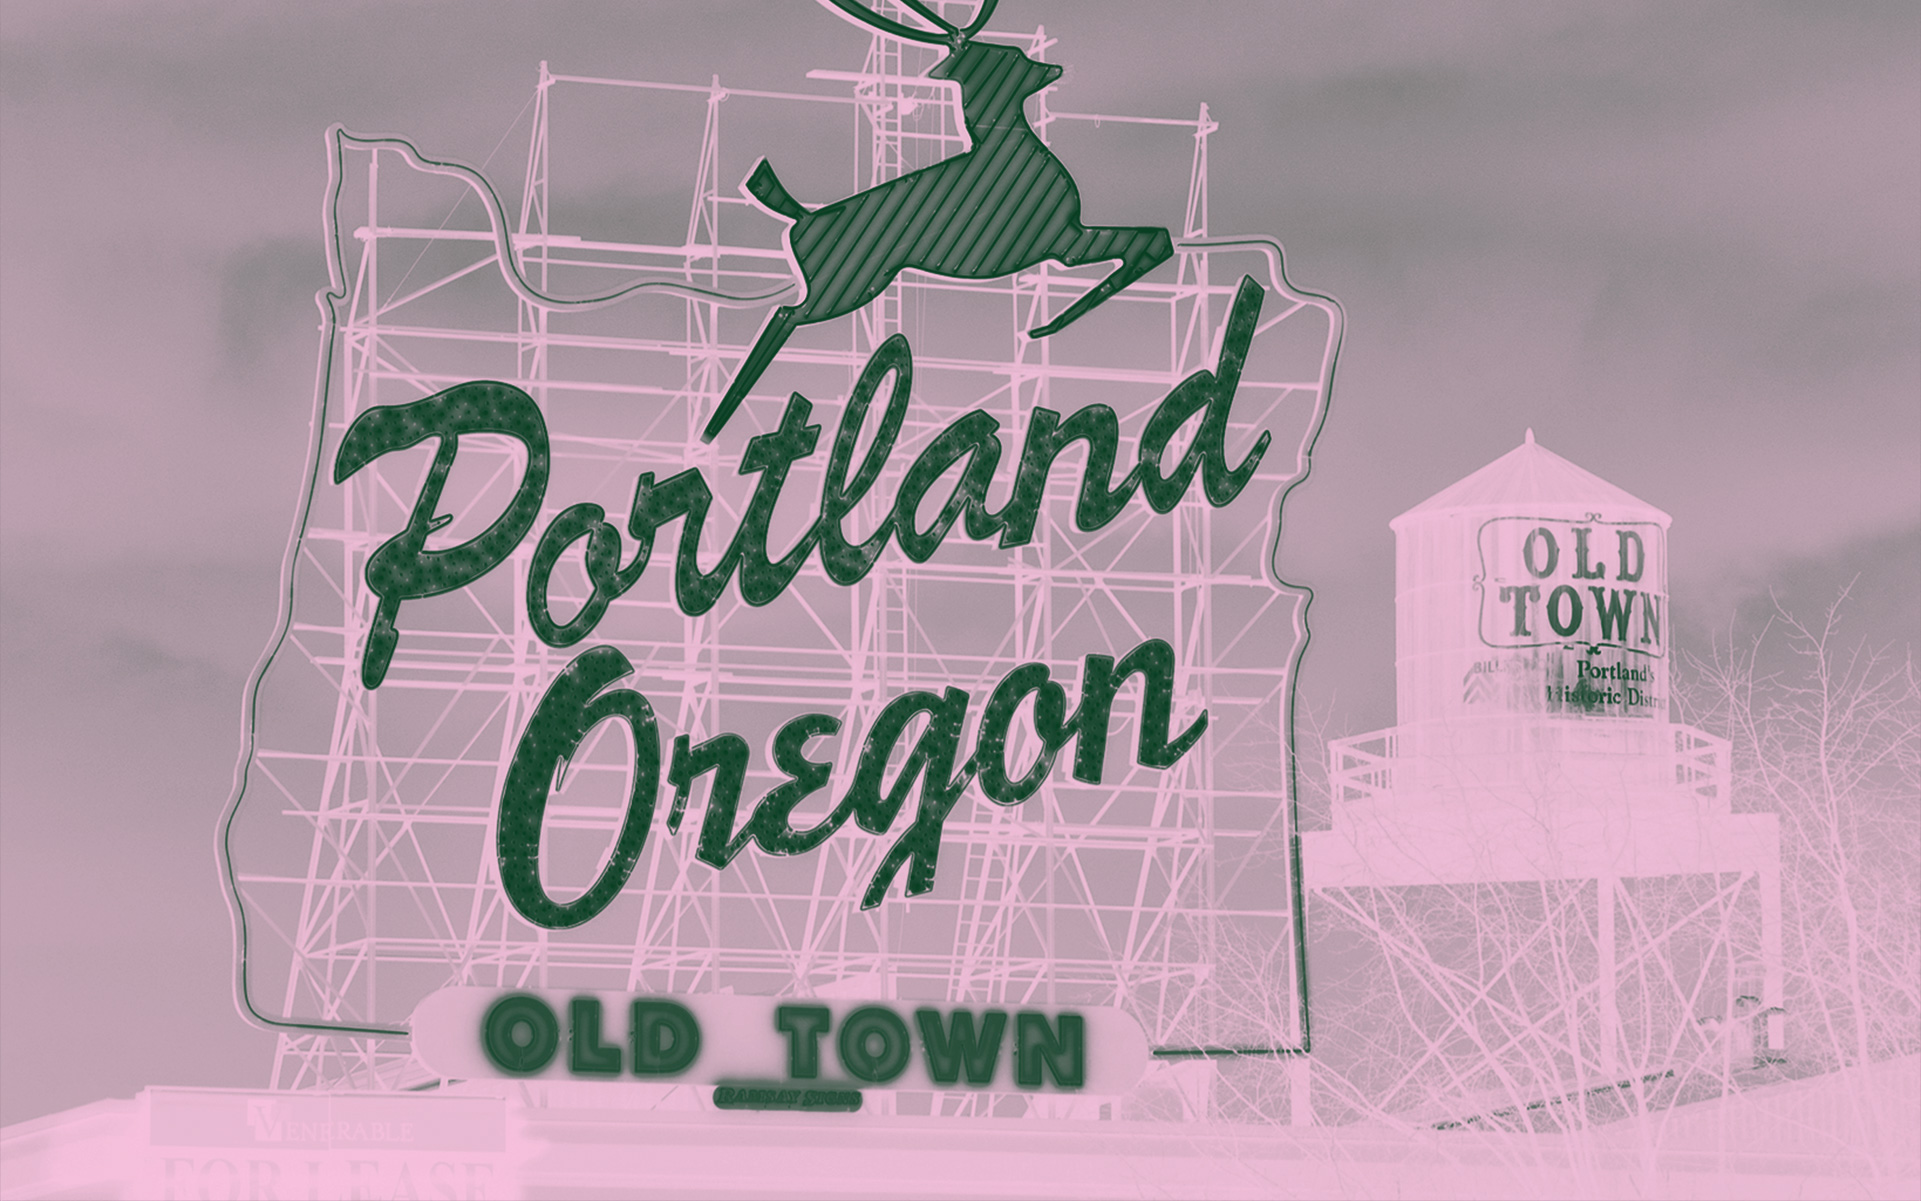 Bargain-Hunting Grounds: Portland's cannabis prices have hit as little as $28 per ounce for shake. (thinair28/iStock)